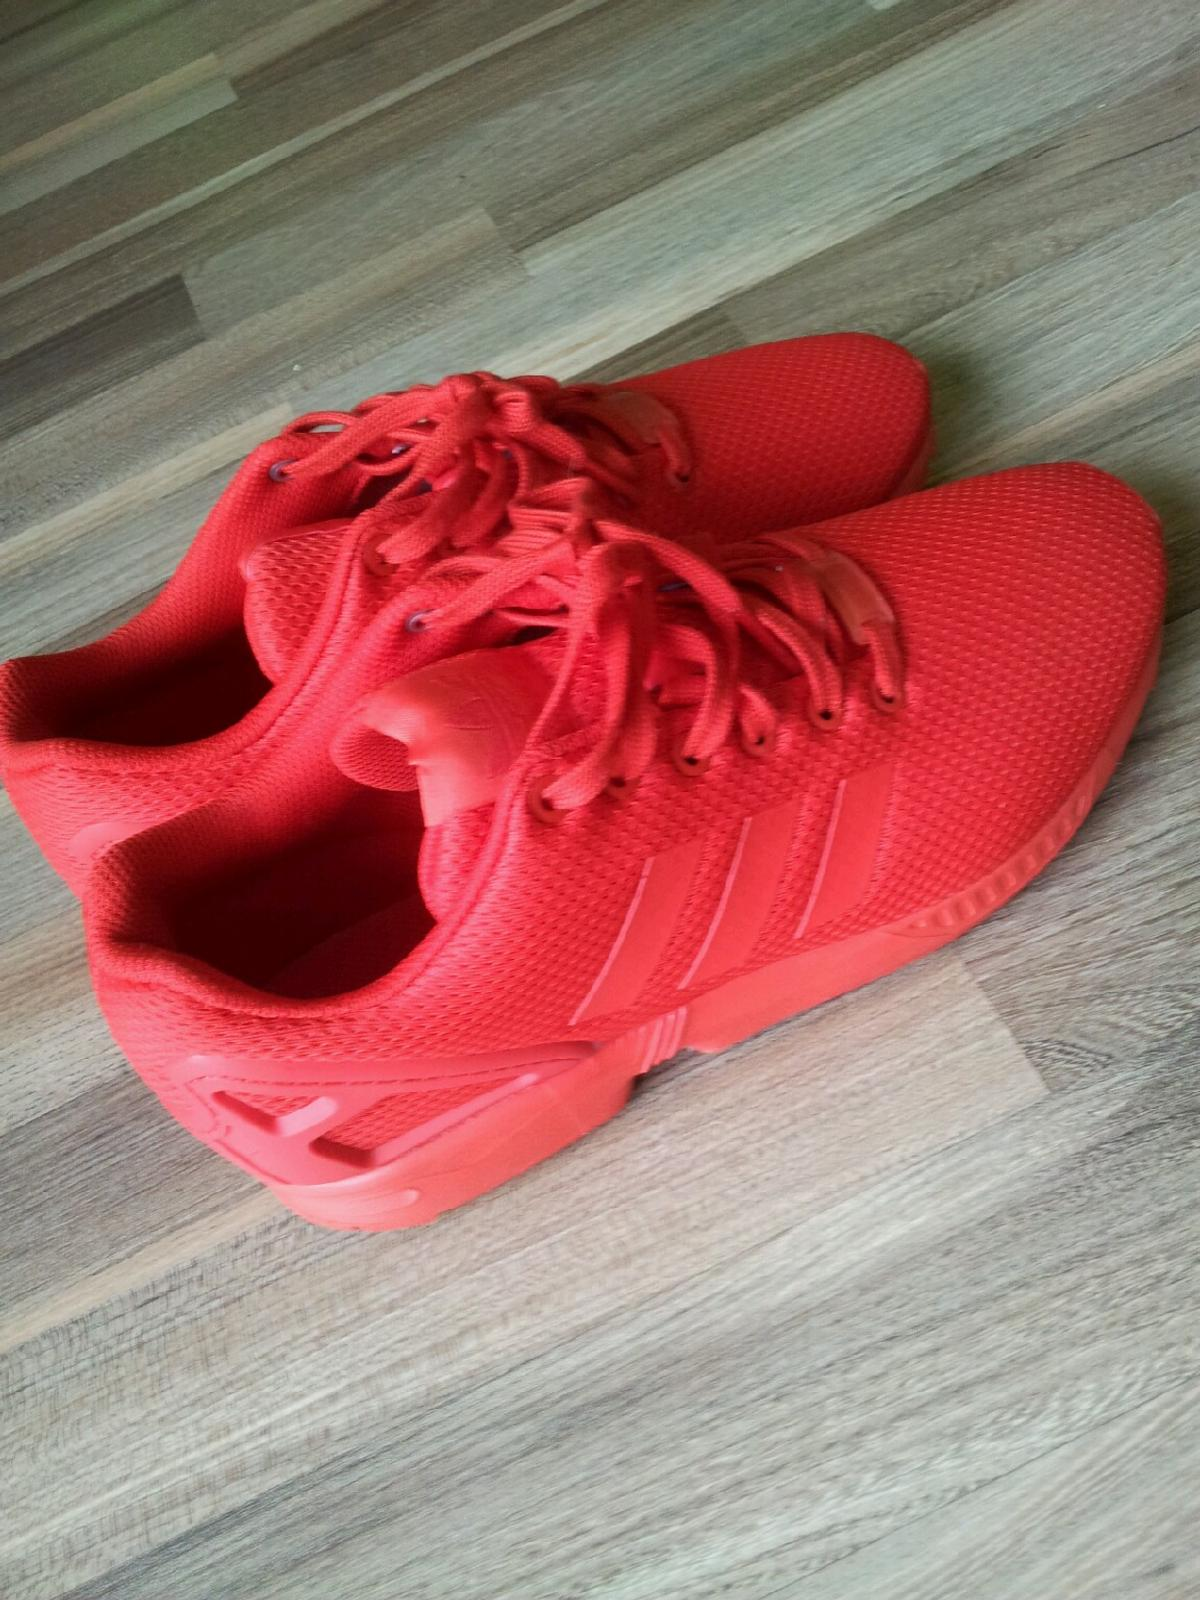 €91 00 for for All in ZX Flux Red 42 Adidas 53840 Troisdorf 1JuclFK35T